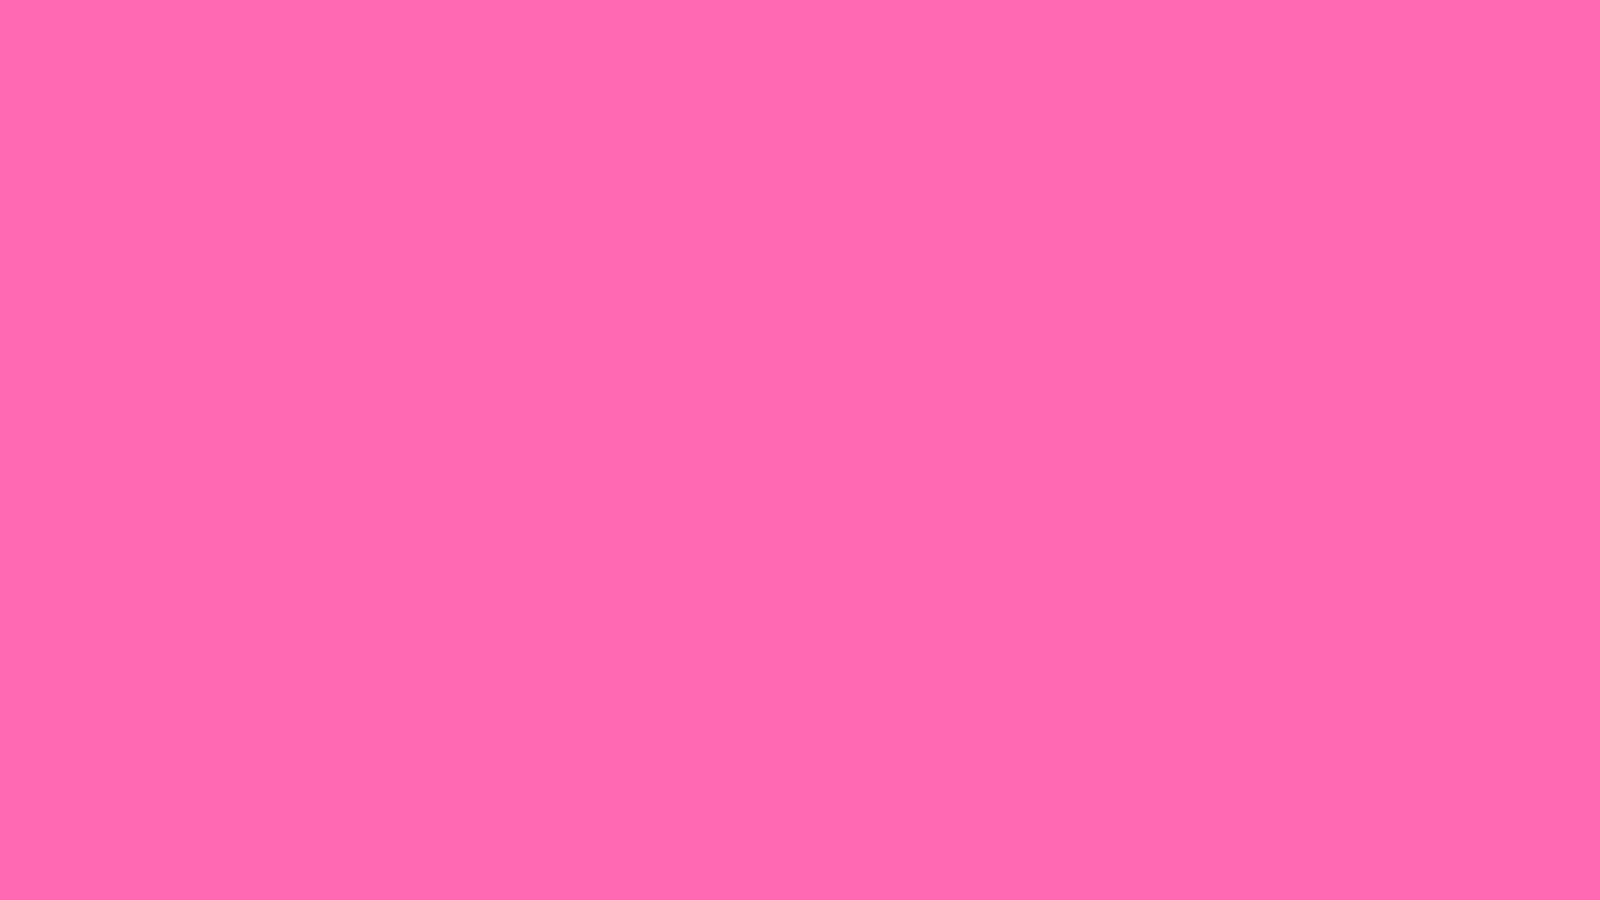 1600x900 Hot Pink Solid Color Background